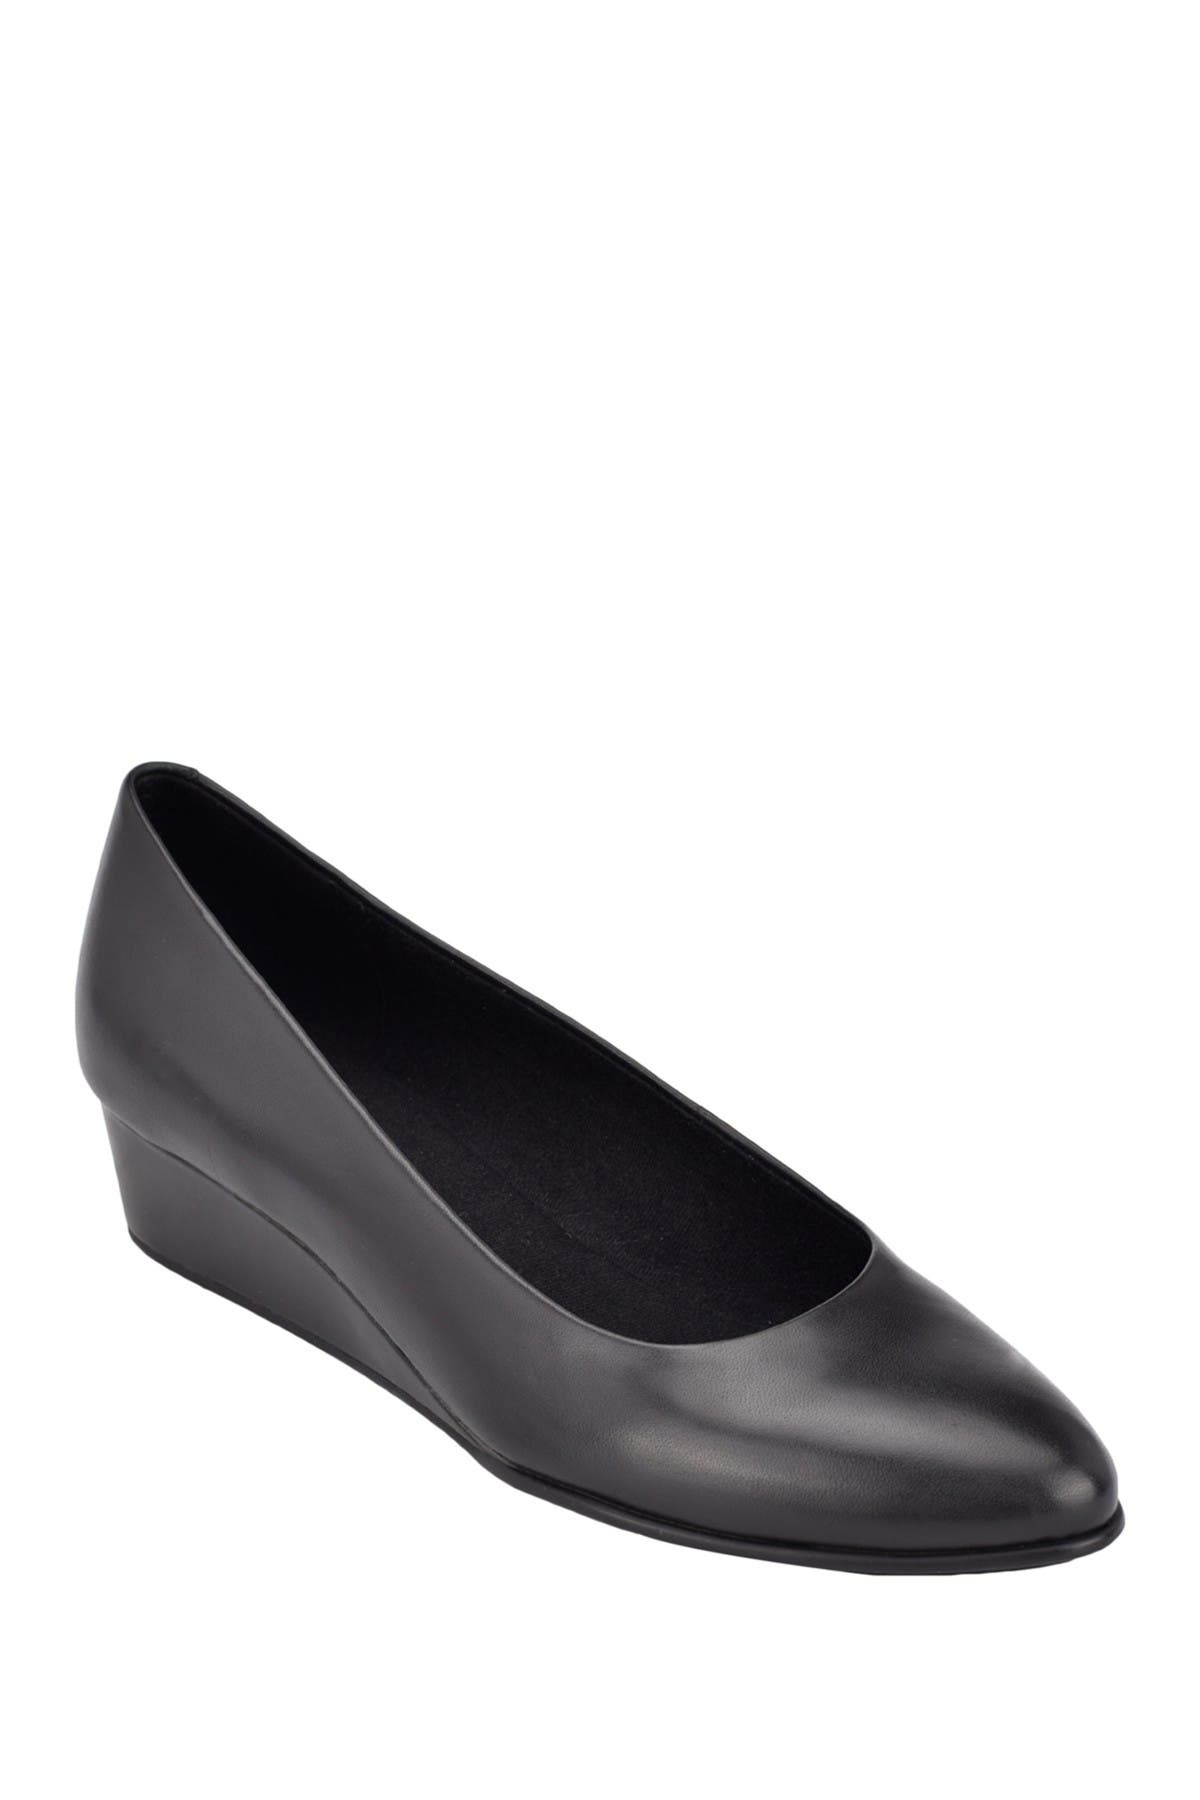 Image of Easy Spirit Abelle Leather Wedge Pump